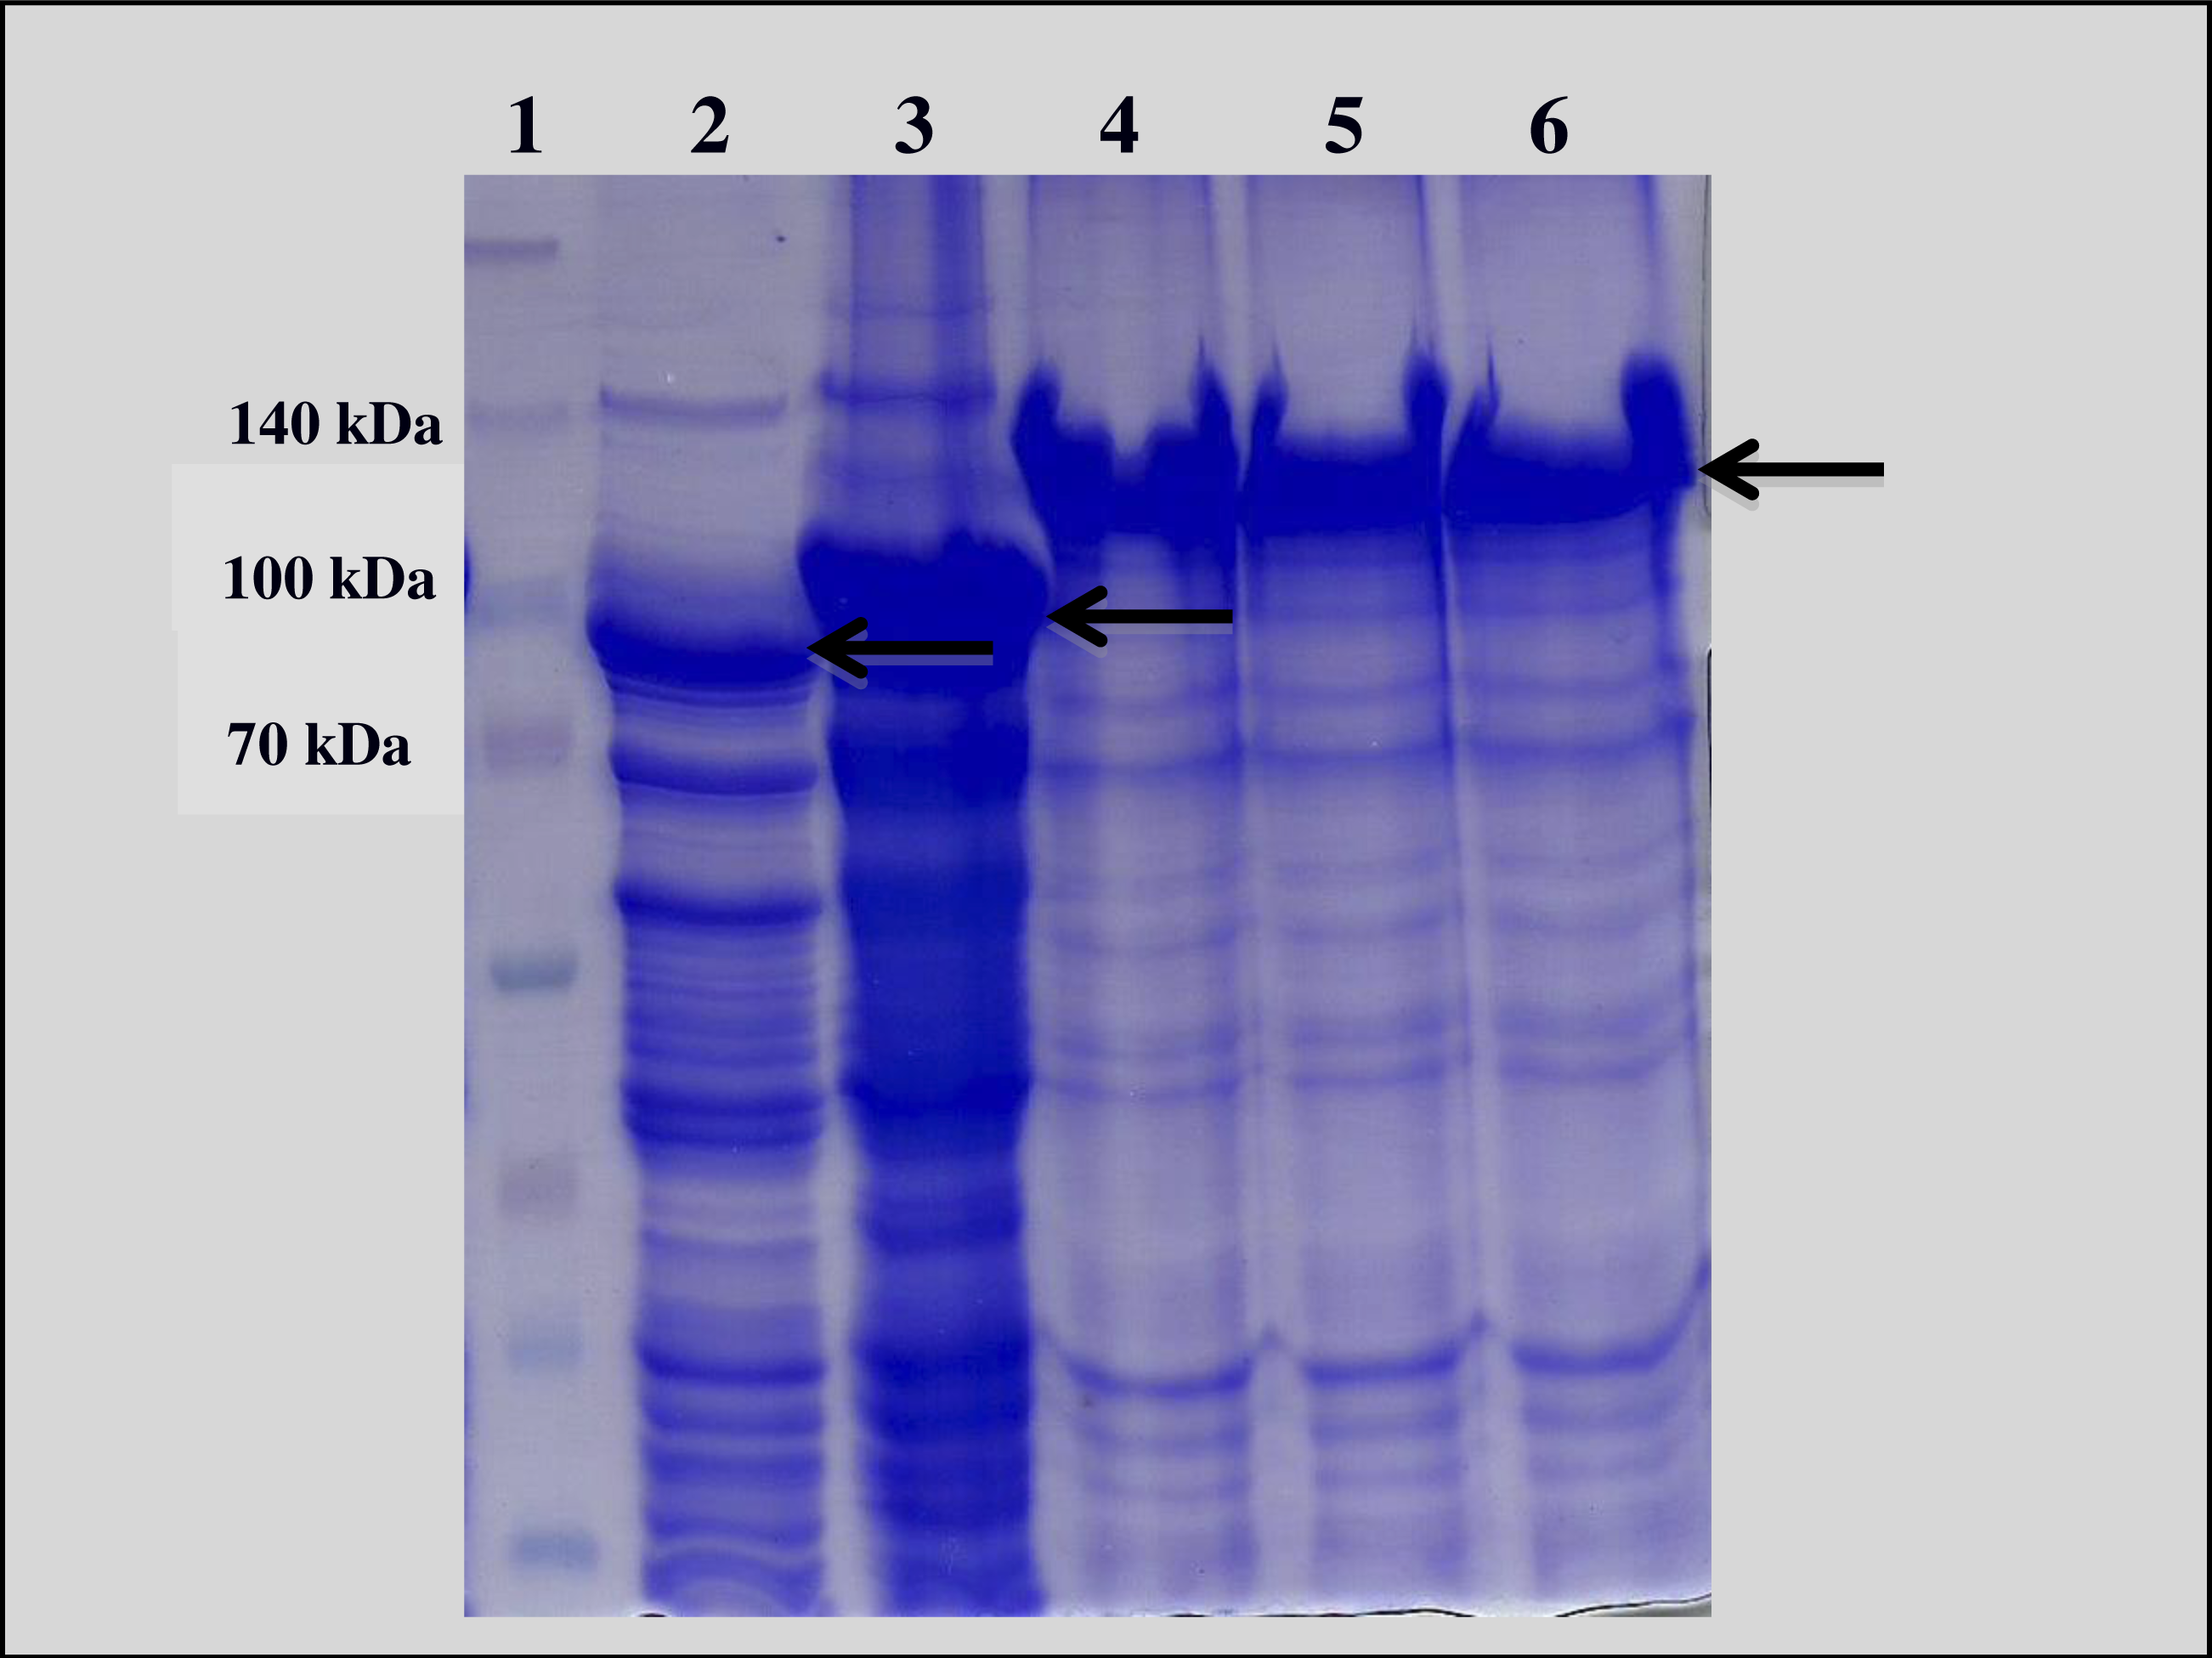 isolation of recombinant escherichia coli iptg Expression, purification and characterization of recombinant plasminogen activator from gloydius brevicaudus venom in escherichia coli (iptg) induction like human tissue pa, the purified renatured rgbv-pa could significantly reduce the rabbit plasma euglobulin lysis time.